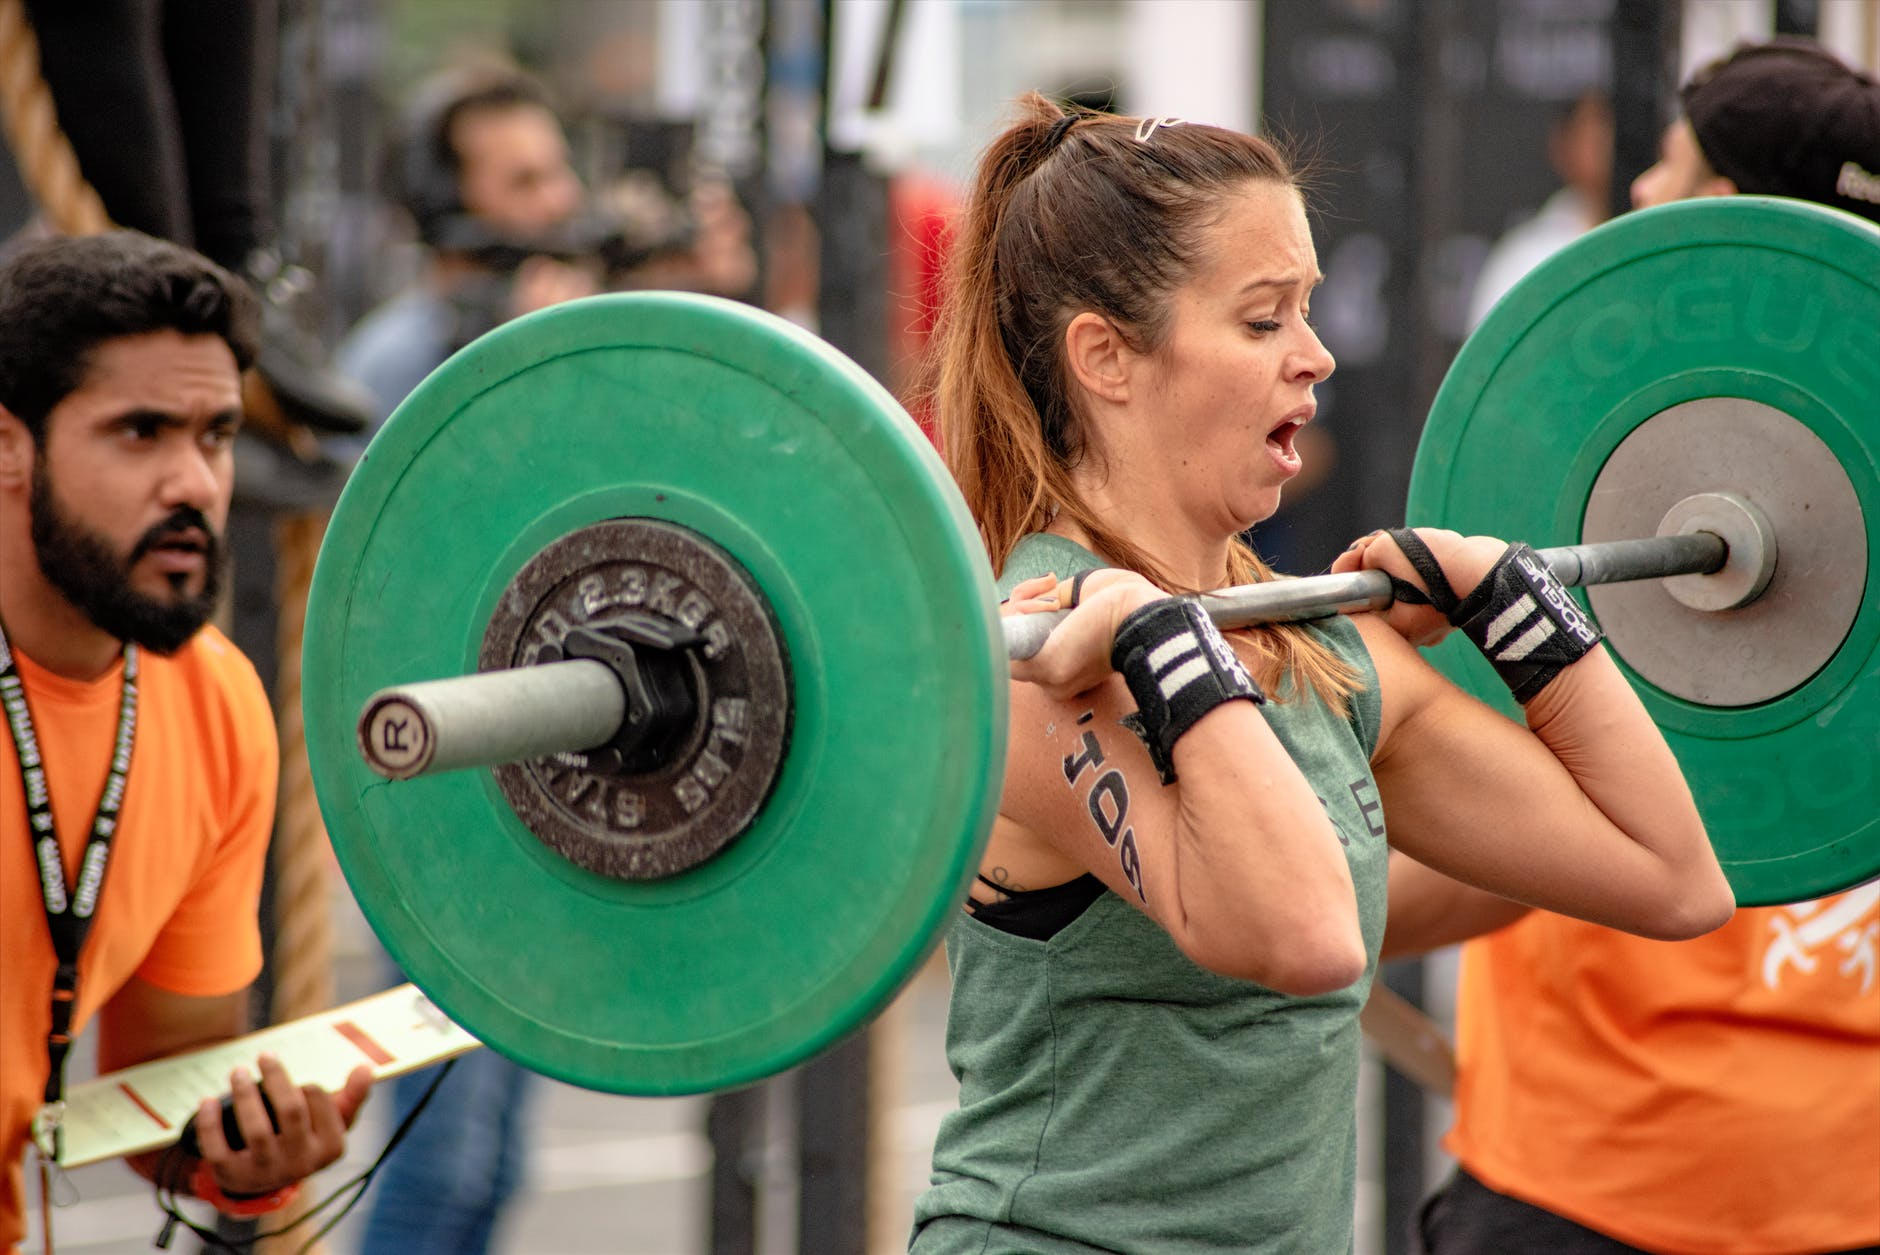 photo of a woman lifting a barbell